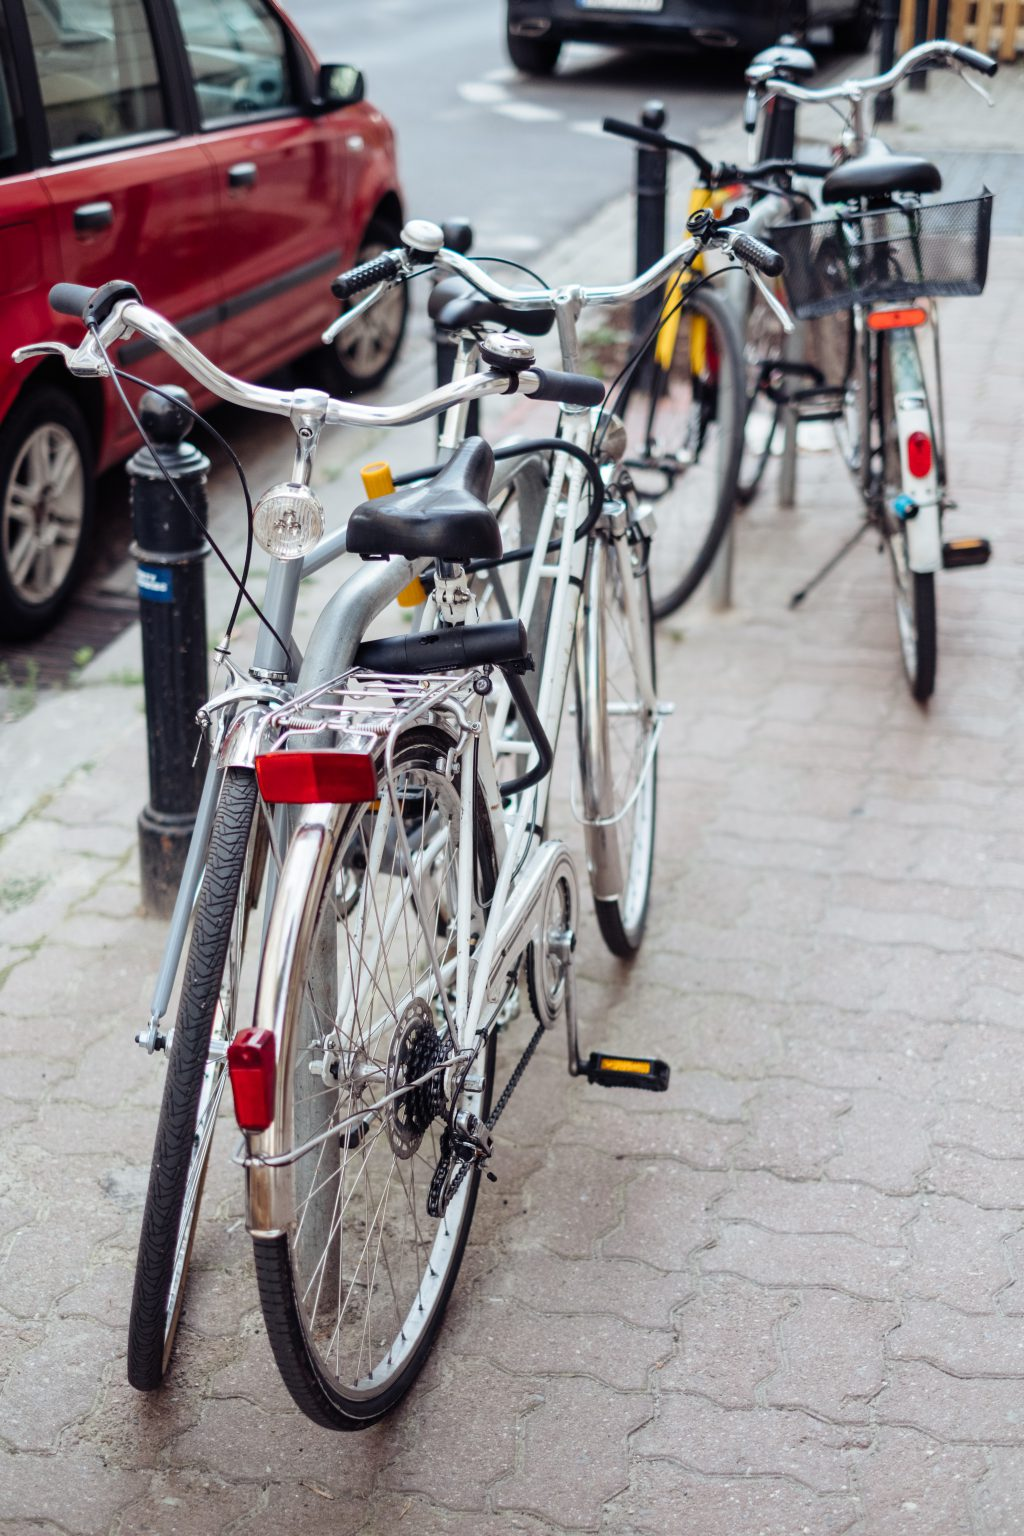 Bicycles attached to bike racks - free stock photo